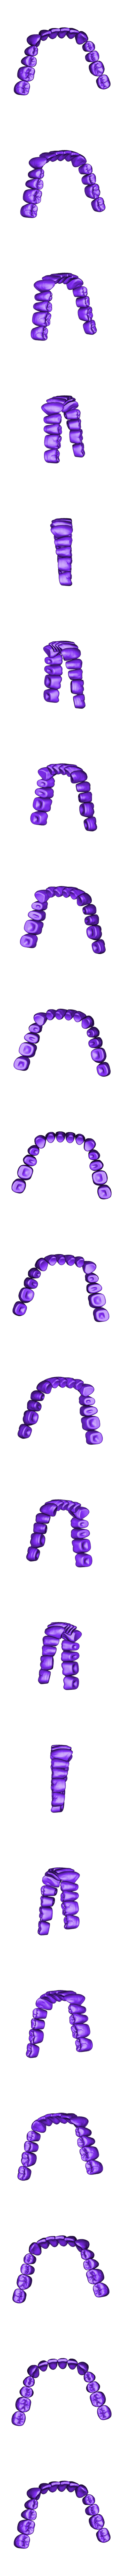 1415201873_20180318_2209_Rami ME922180AE42674B0E8EB81378BA2E1071 3.stl Download OBJ file Full Dentures with Many Production Options  • 3D printing object, LabMagic3DCAD